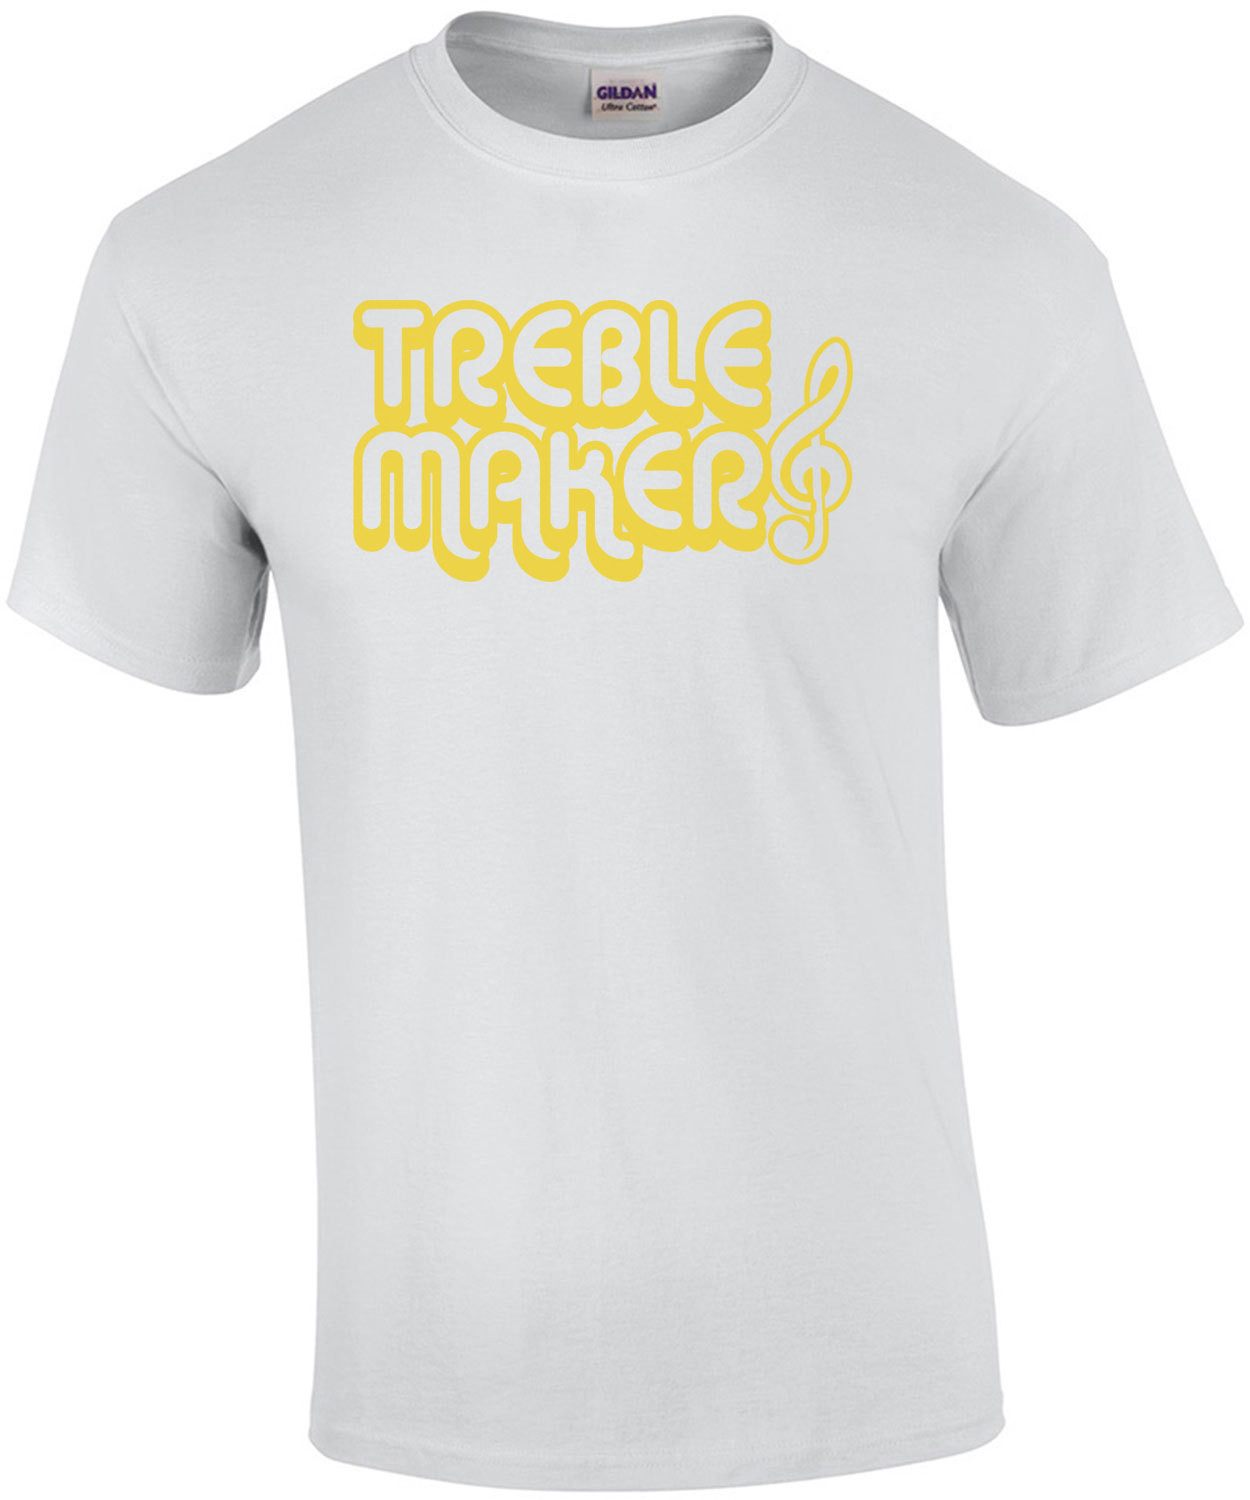 Treble Maker - Funny musician t-shirt